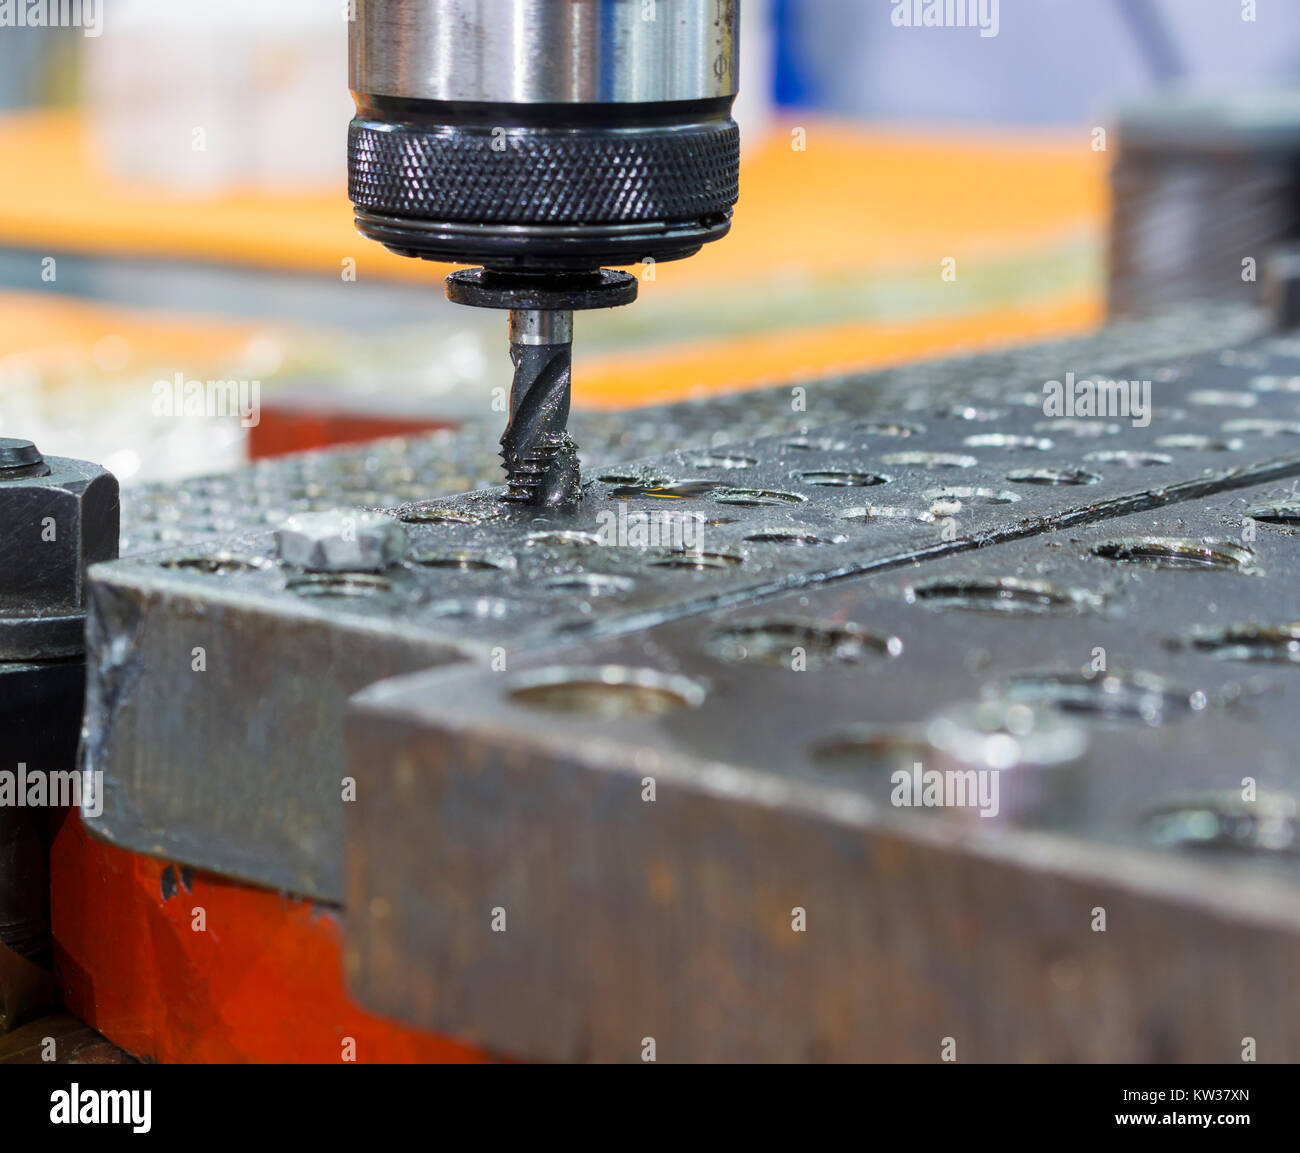 Tapping tool in spindle tapping into a hole in steel plate - Stock Image